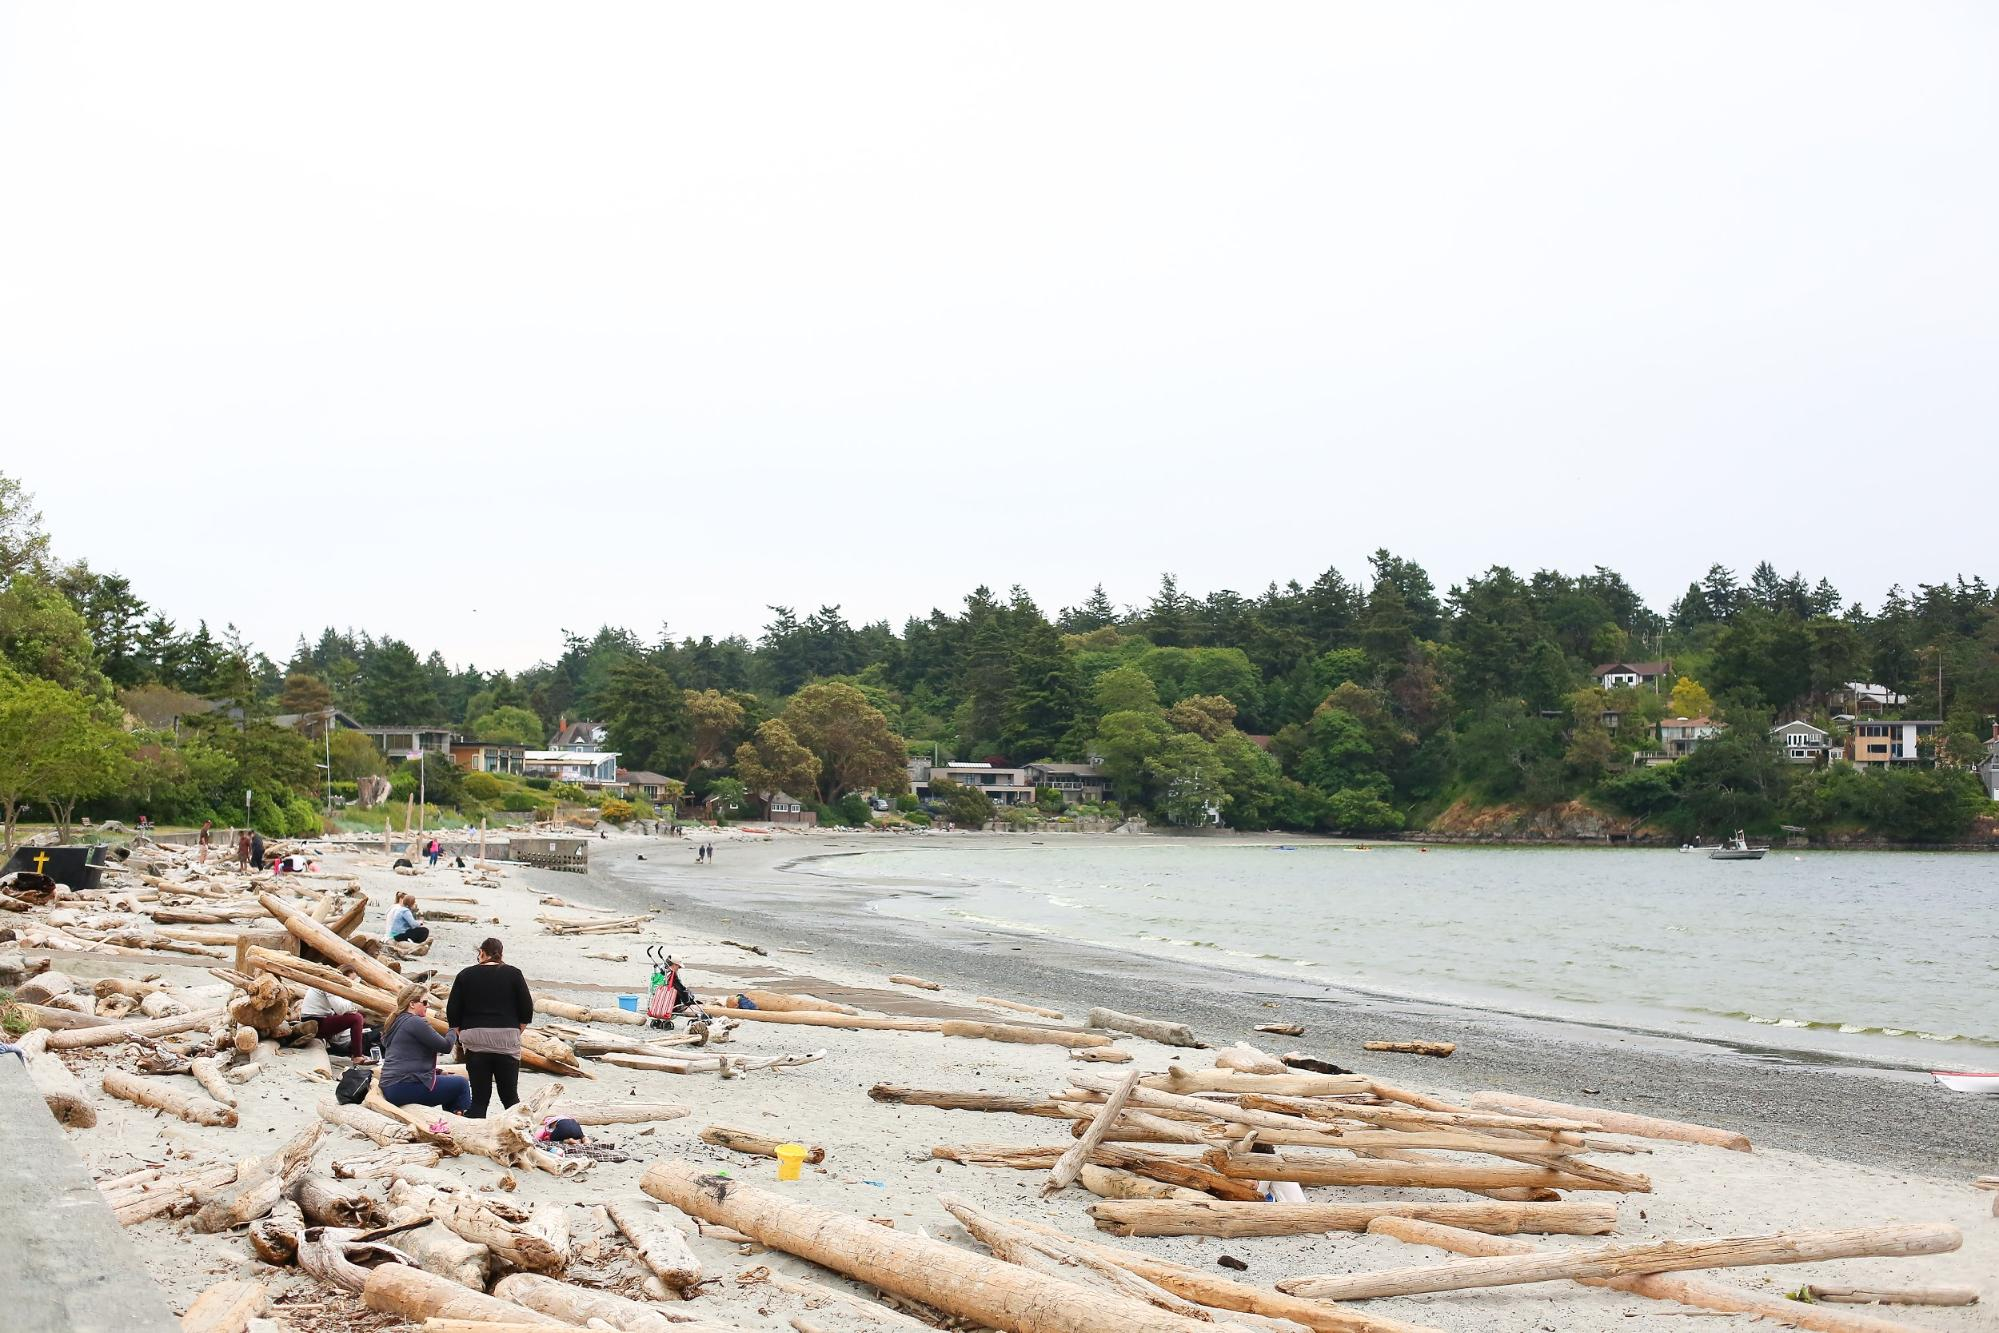 Groups of people explore a sandy beach covered in driftwood.